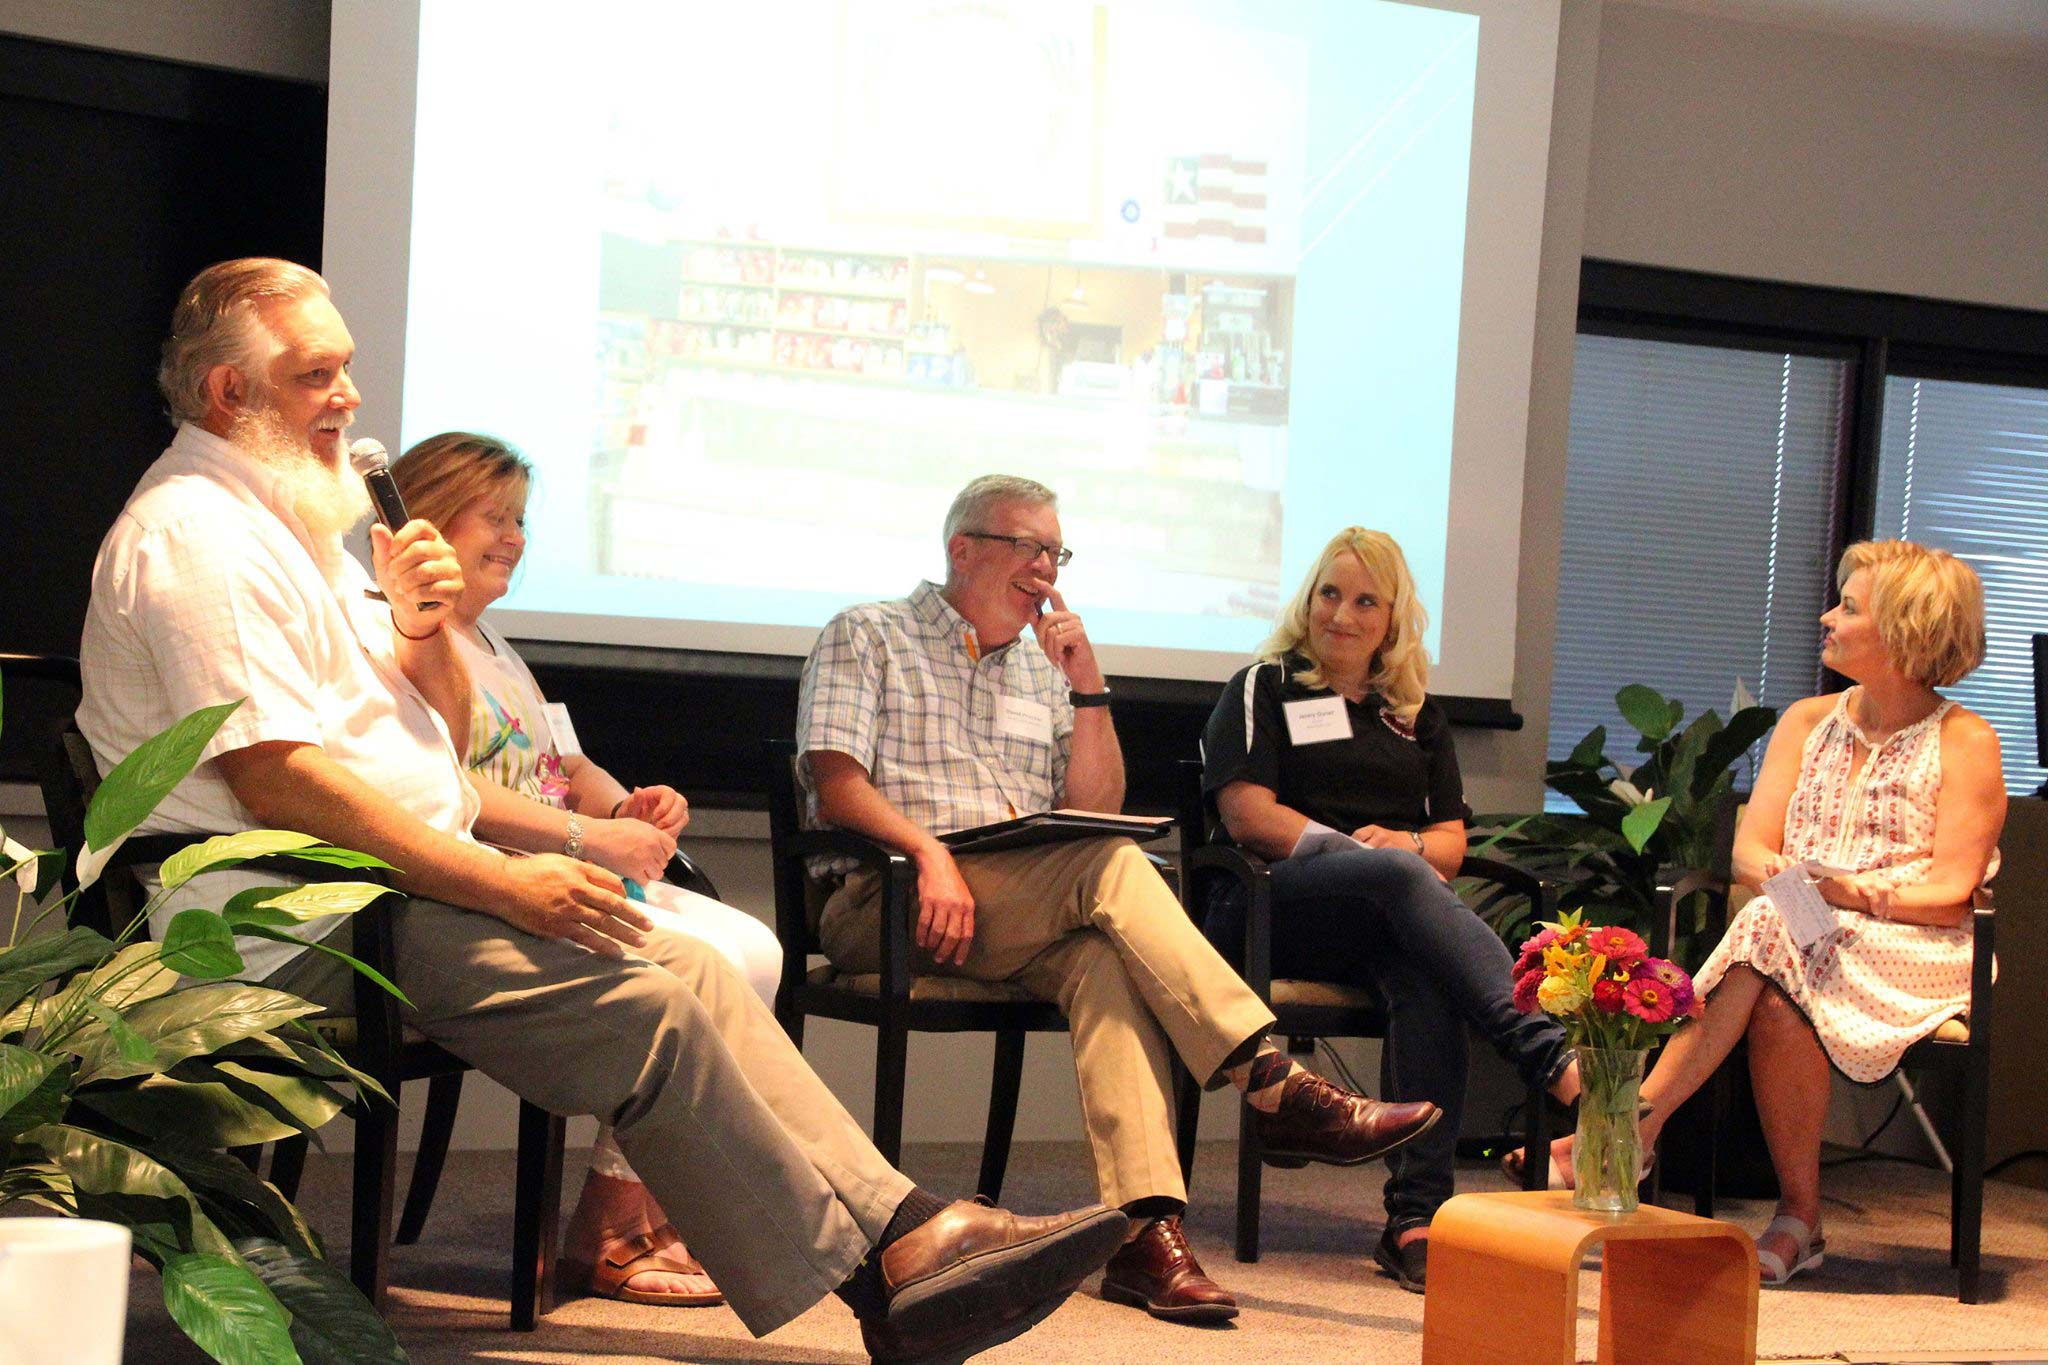 A panel of grocers at the 2017 Healthy Eating Rural Opportunities Learning Collaborative: Fred and Vali Smith (left) of Tipton Grocery in Tipton, pop. 210, and Jenny Osner of Hired Mans Grocery & Grill Inc in Conway Springs, pop. 1,272 (second from right). Debra Nelson from Garden of Eden Little River, pop. 557 (right). David Procter of Rural Grocery Initiative is in the center. —Photo by Phil Cauthon